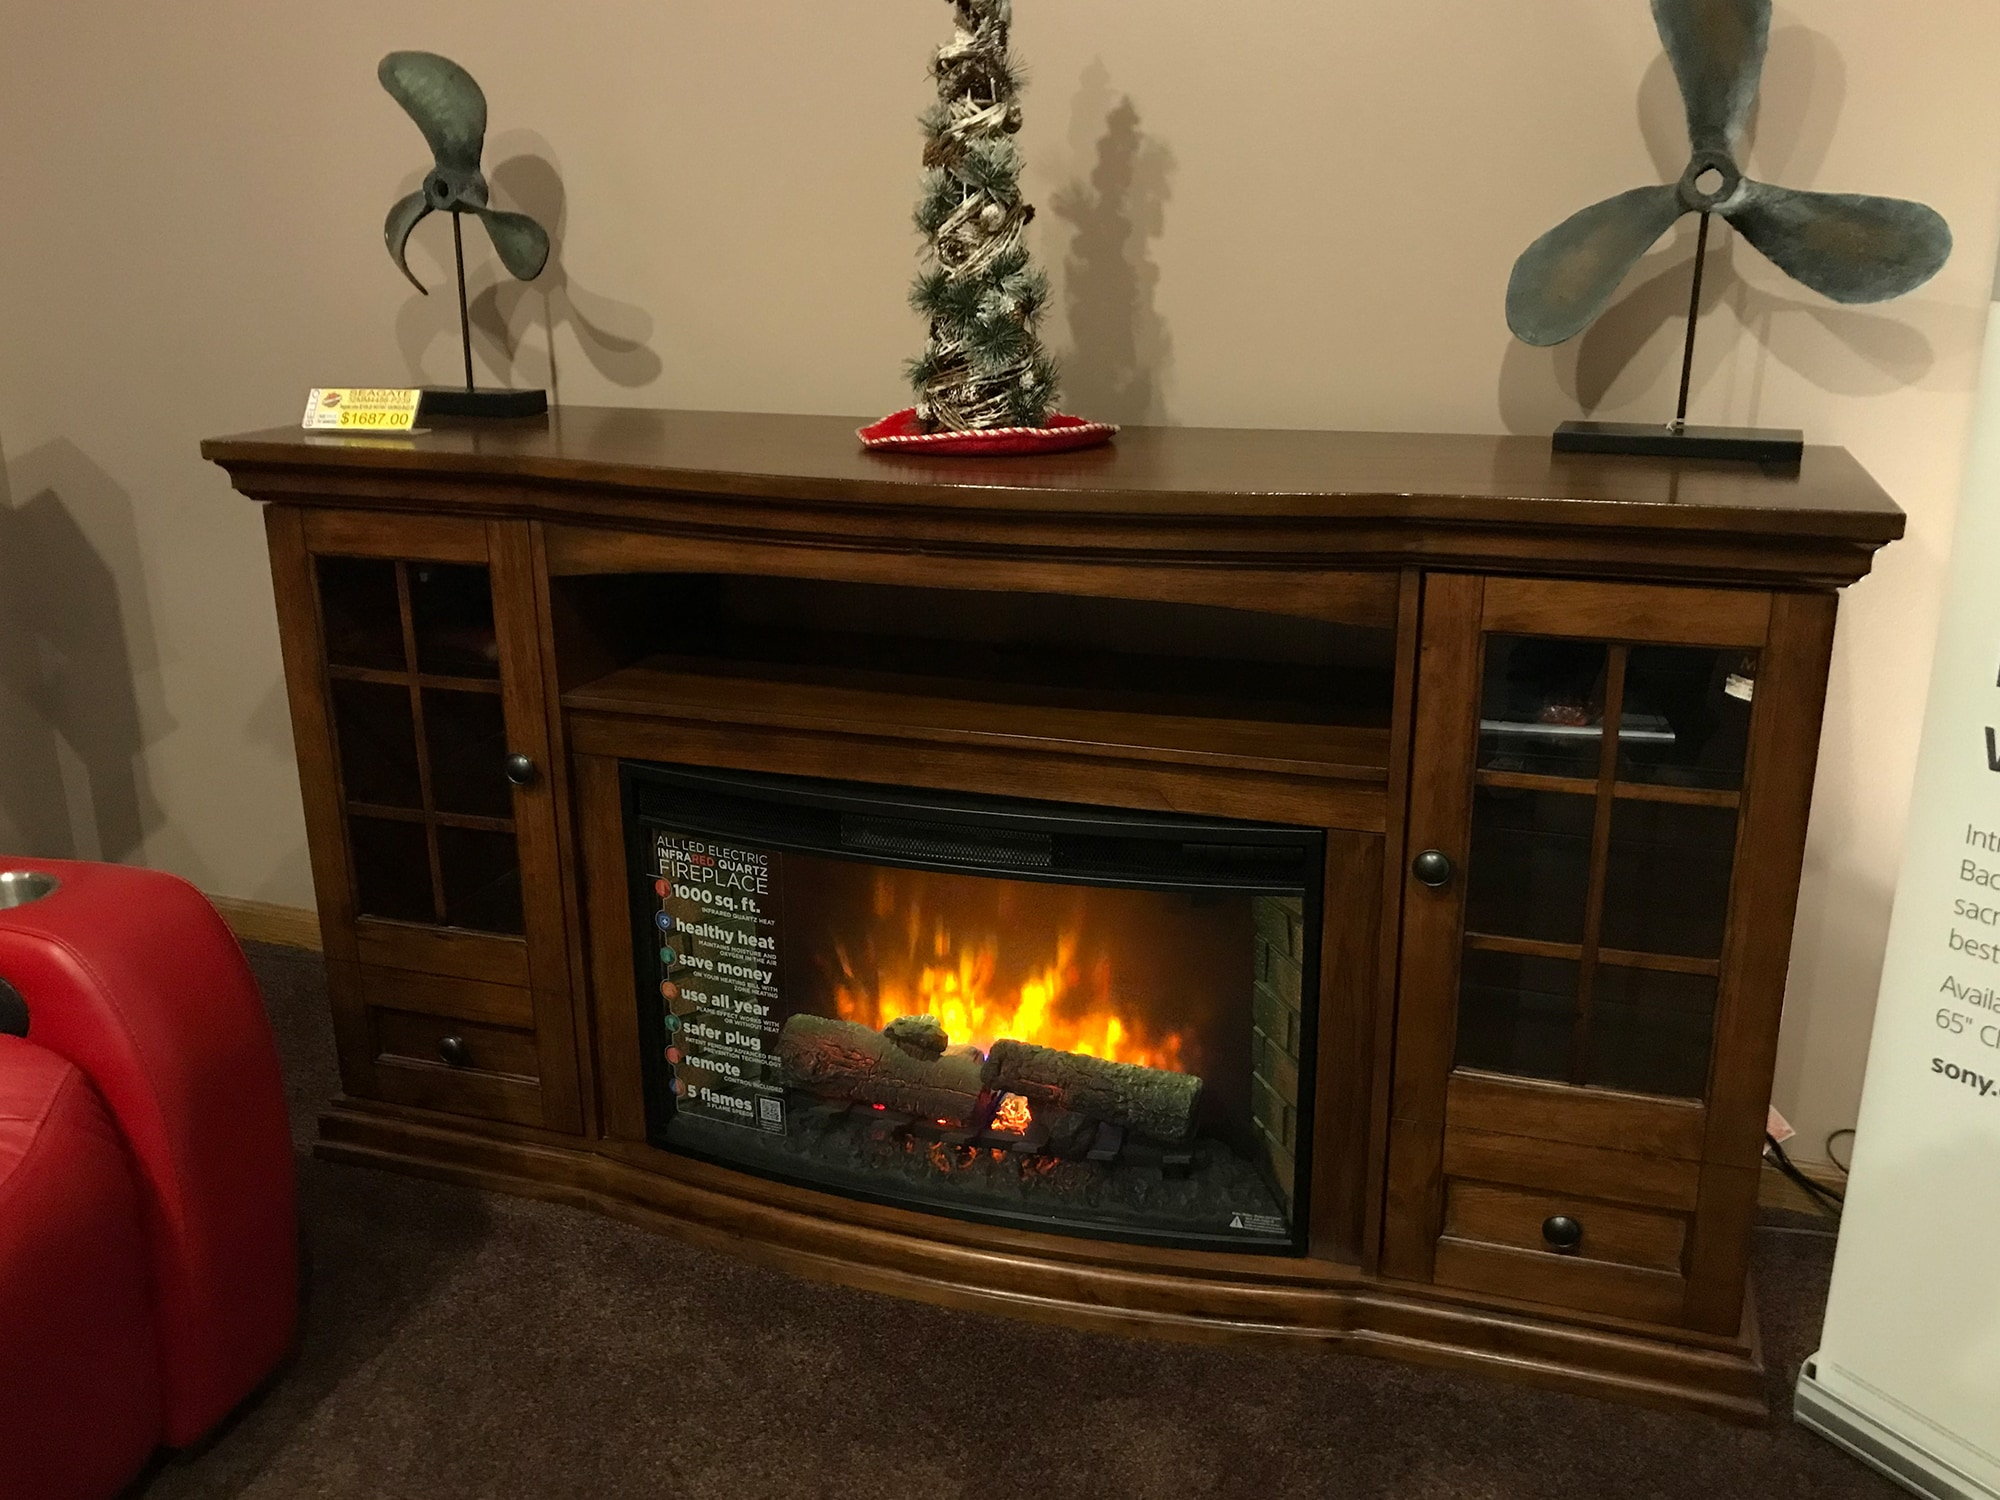 charlton wayfair fireplace home improvement in forres reviews plug electric pdx